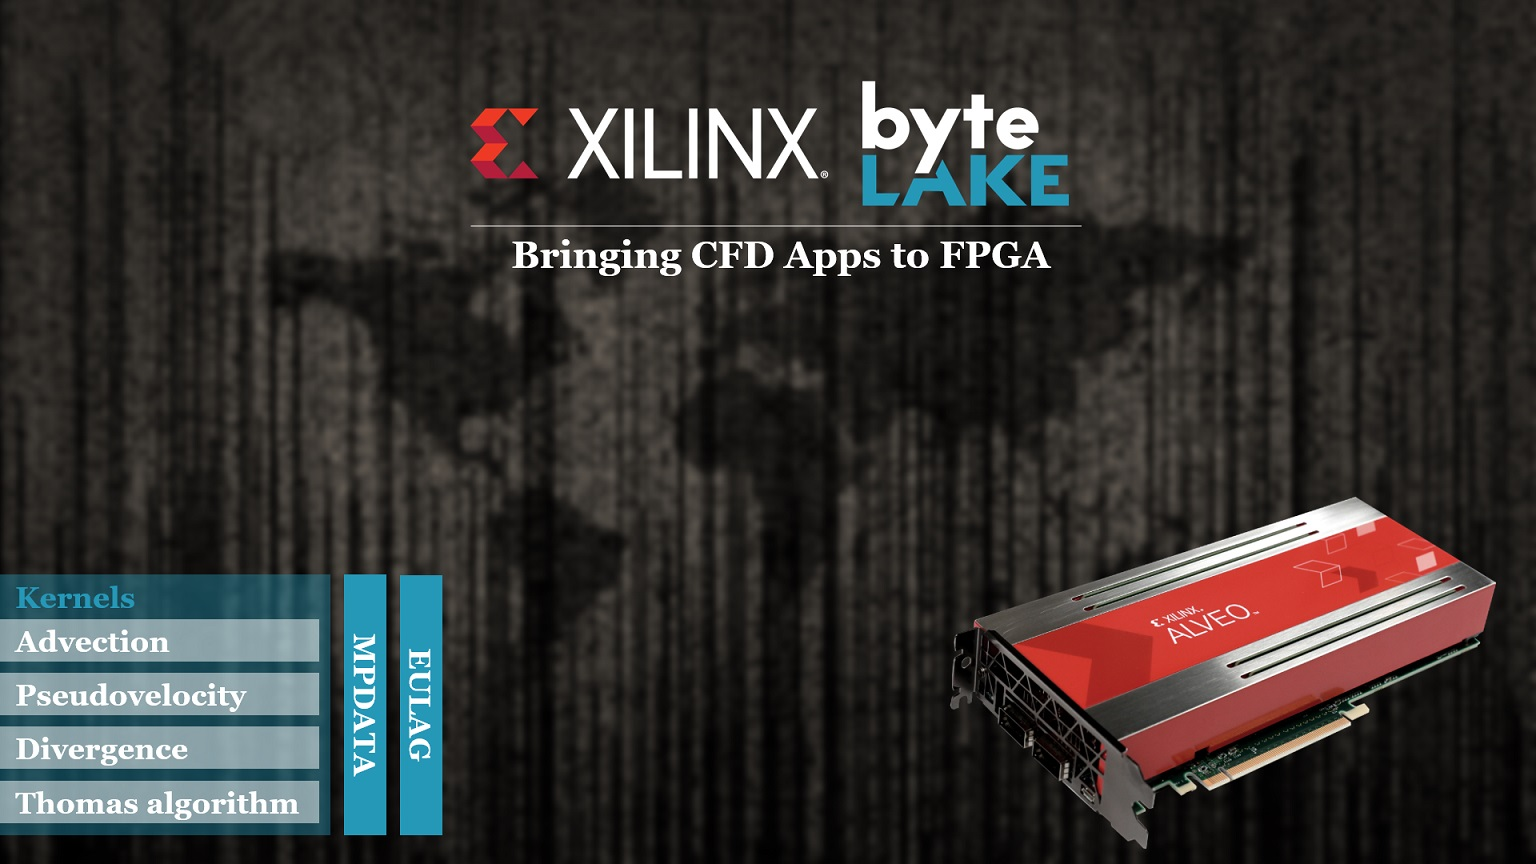 byteLAKE and Xilinx bring CFD Apps to FPGA